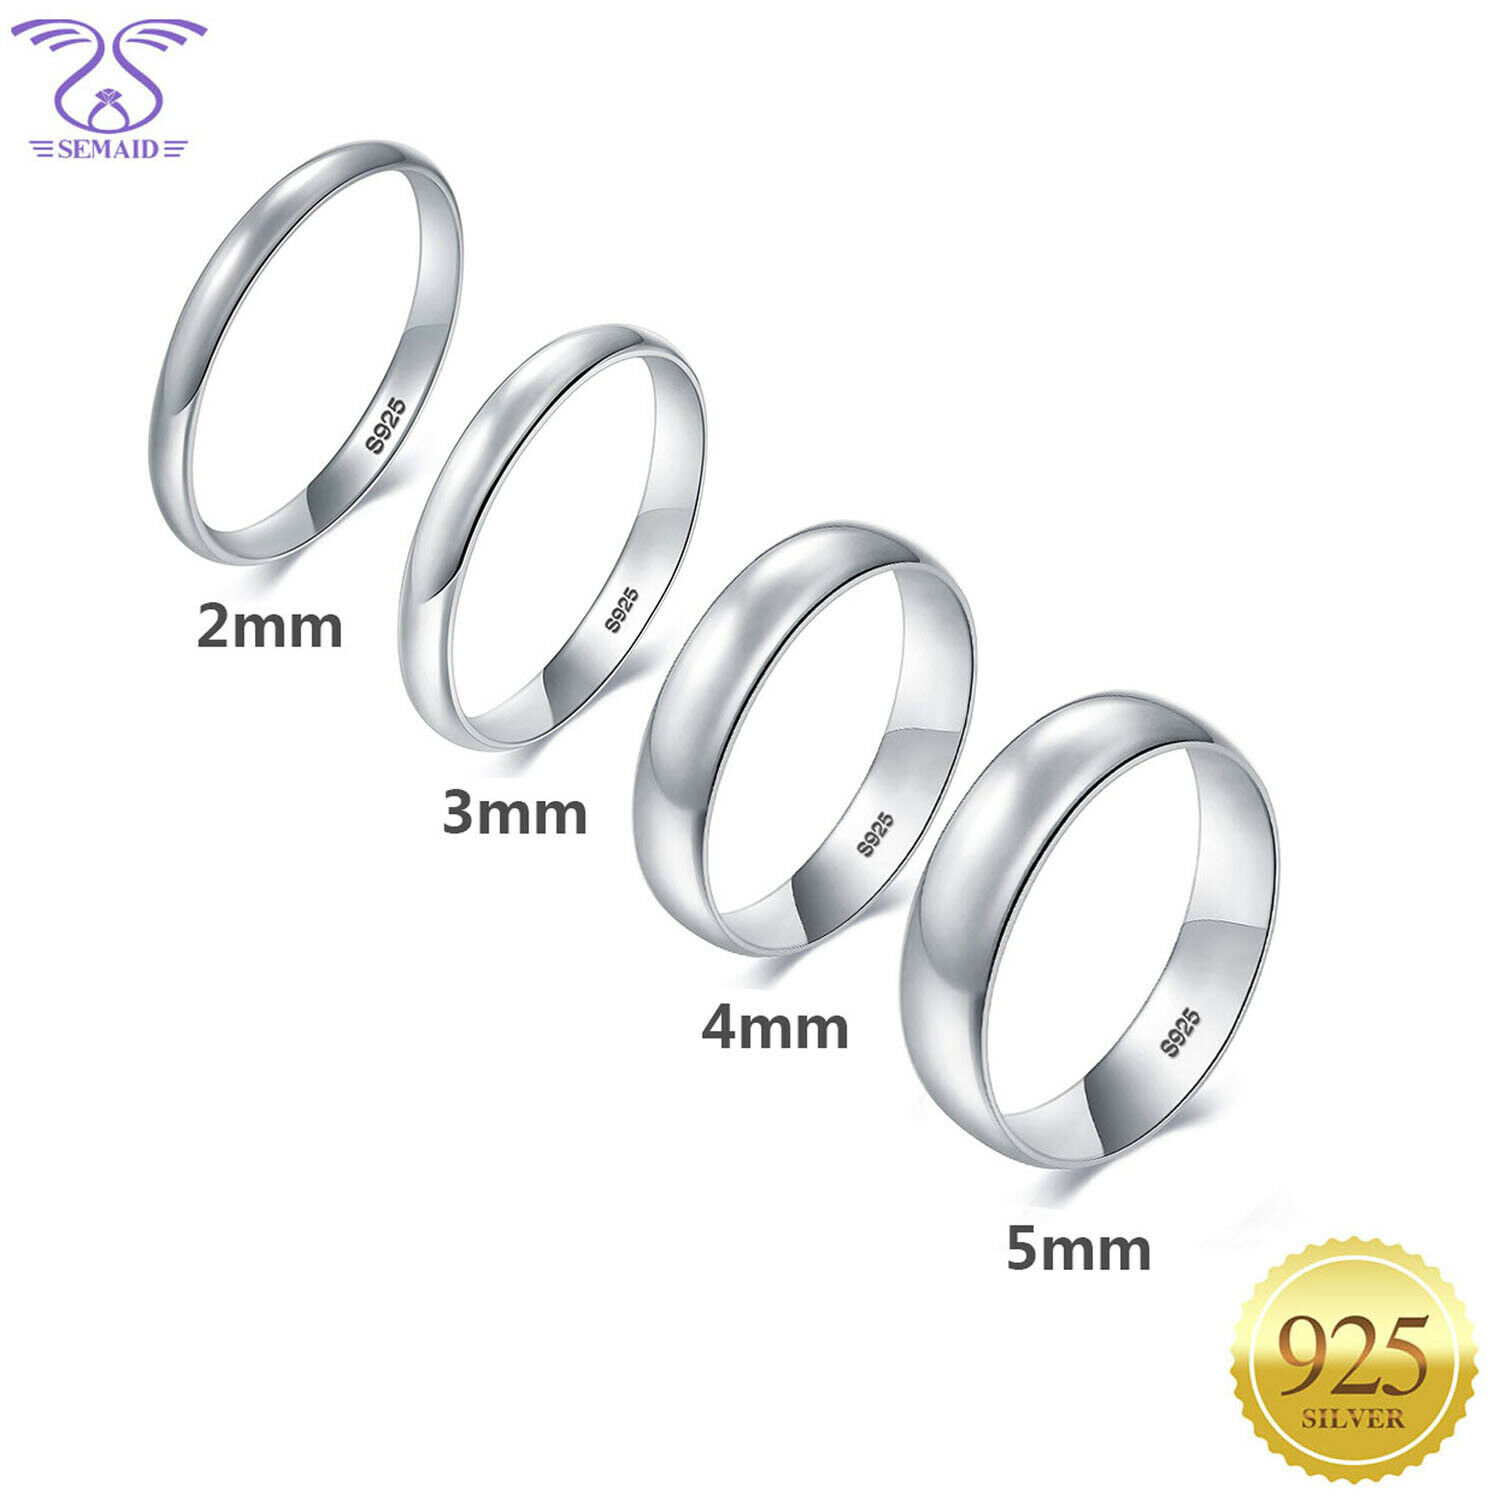 Solid 925 Sterling Silver 3mm Comfort Fit Flat Wedding Band